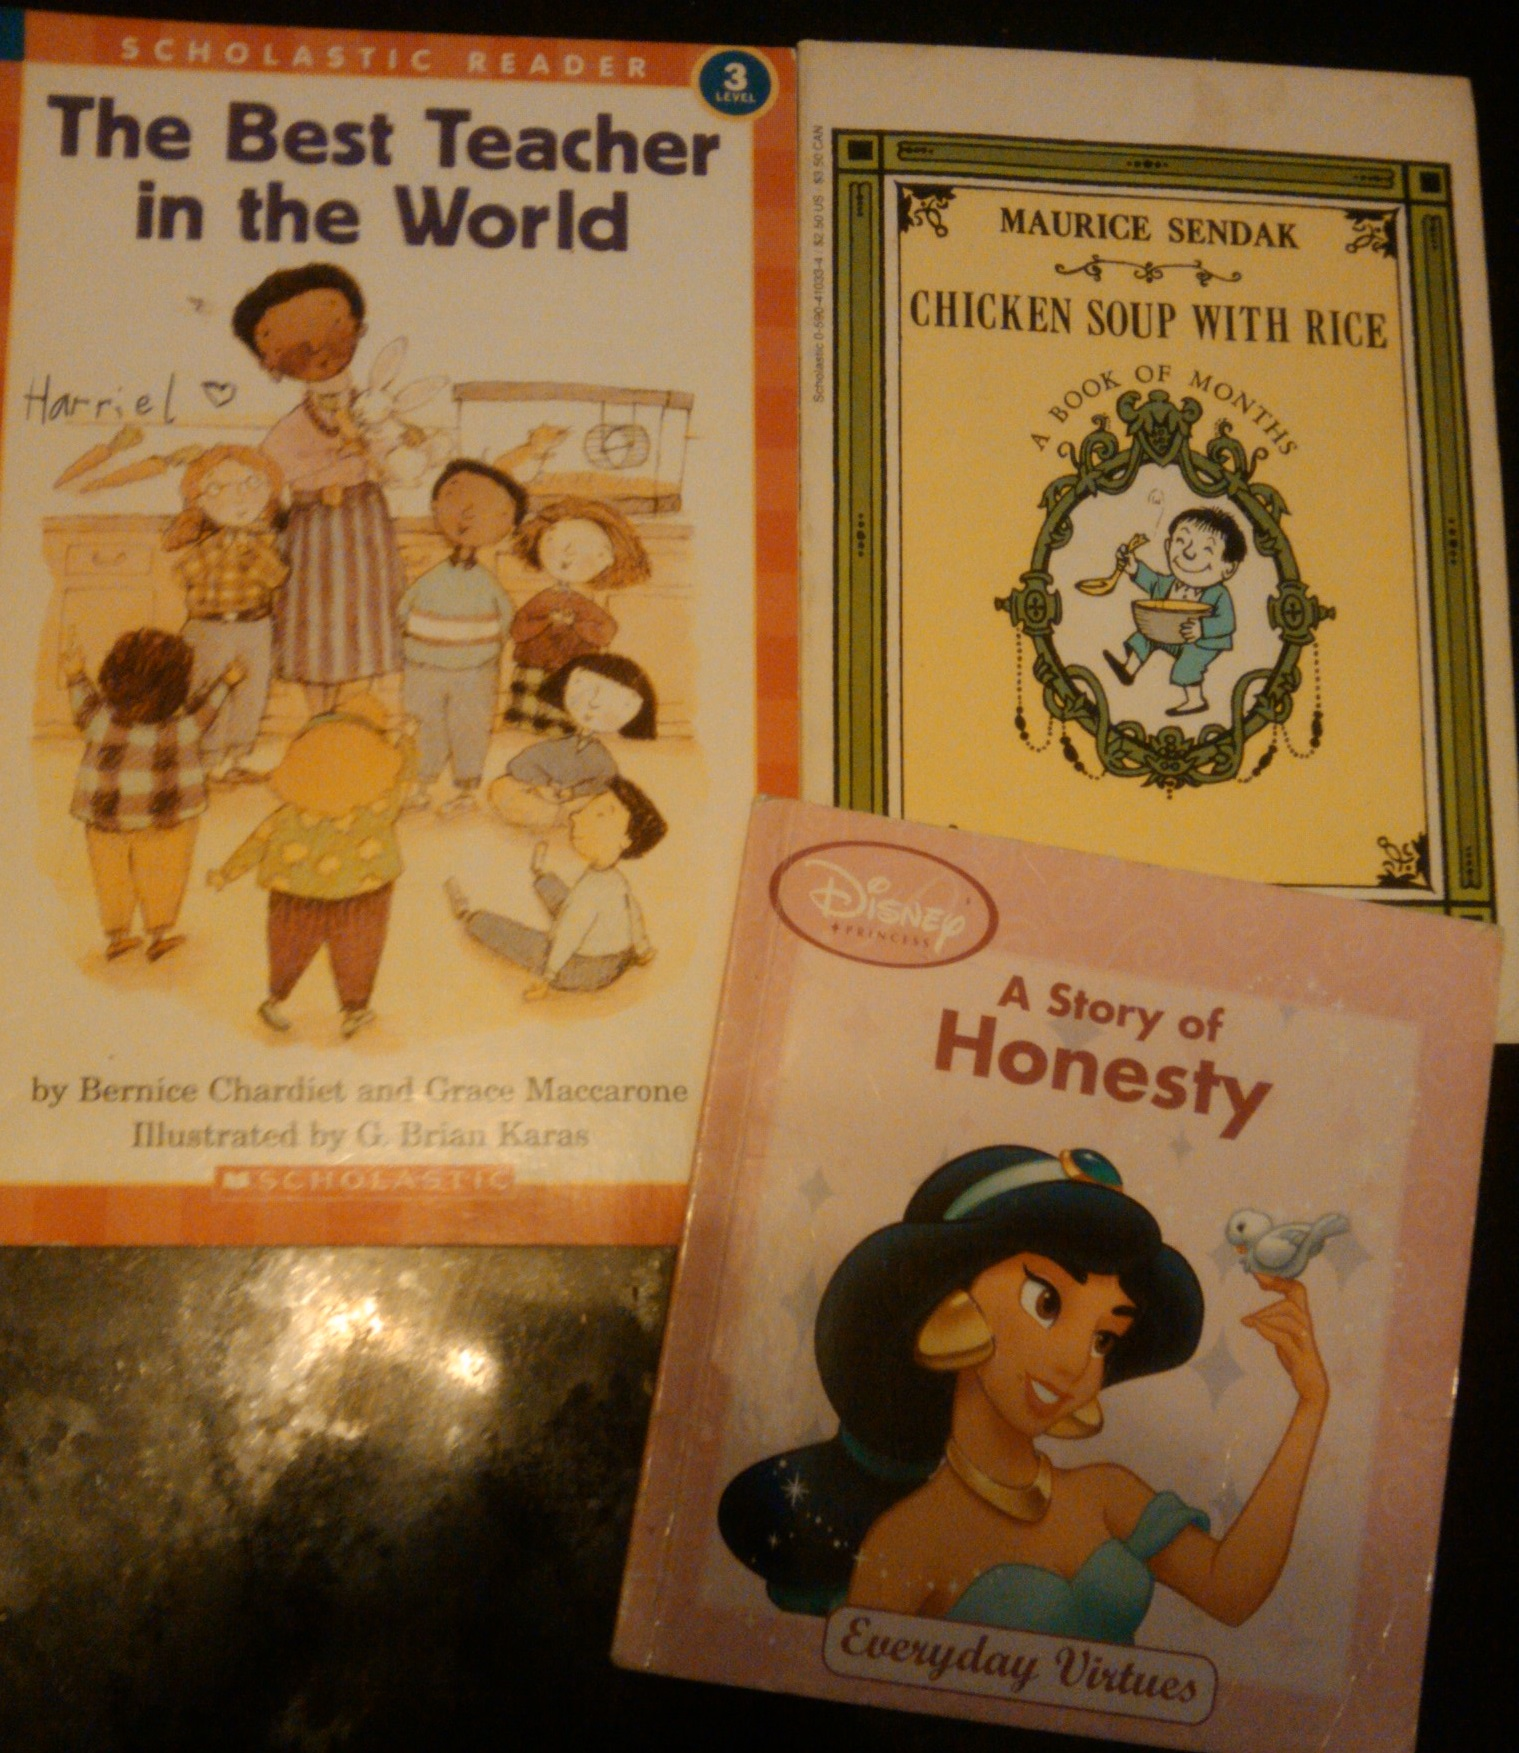 OSM! is campaigning for books to ensure children's bright future. Donations welcome.